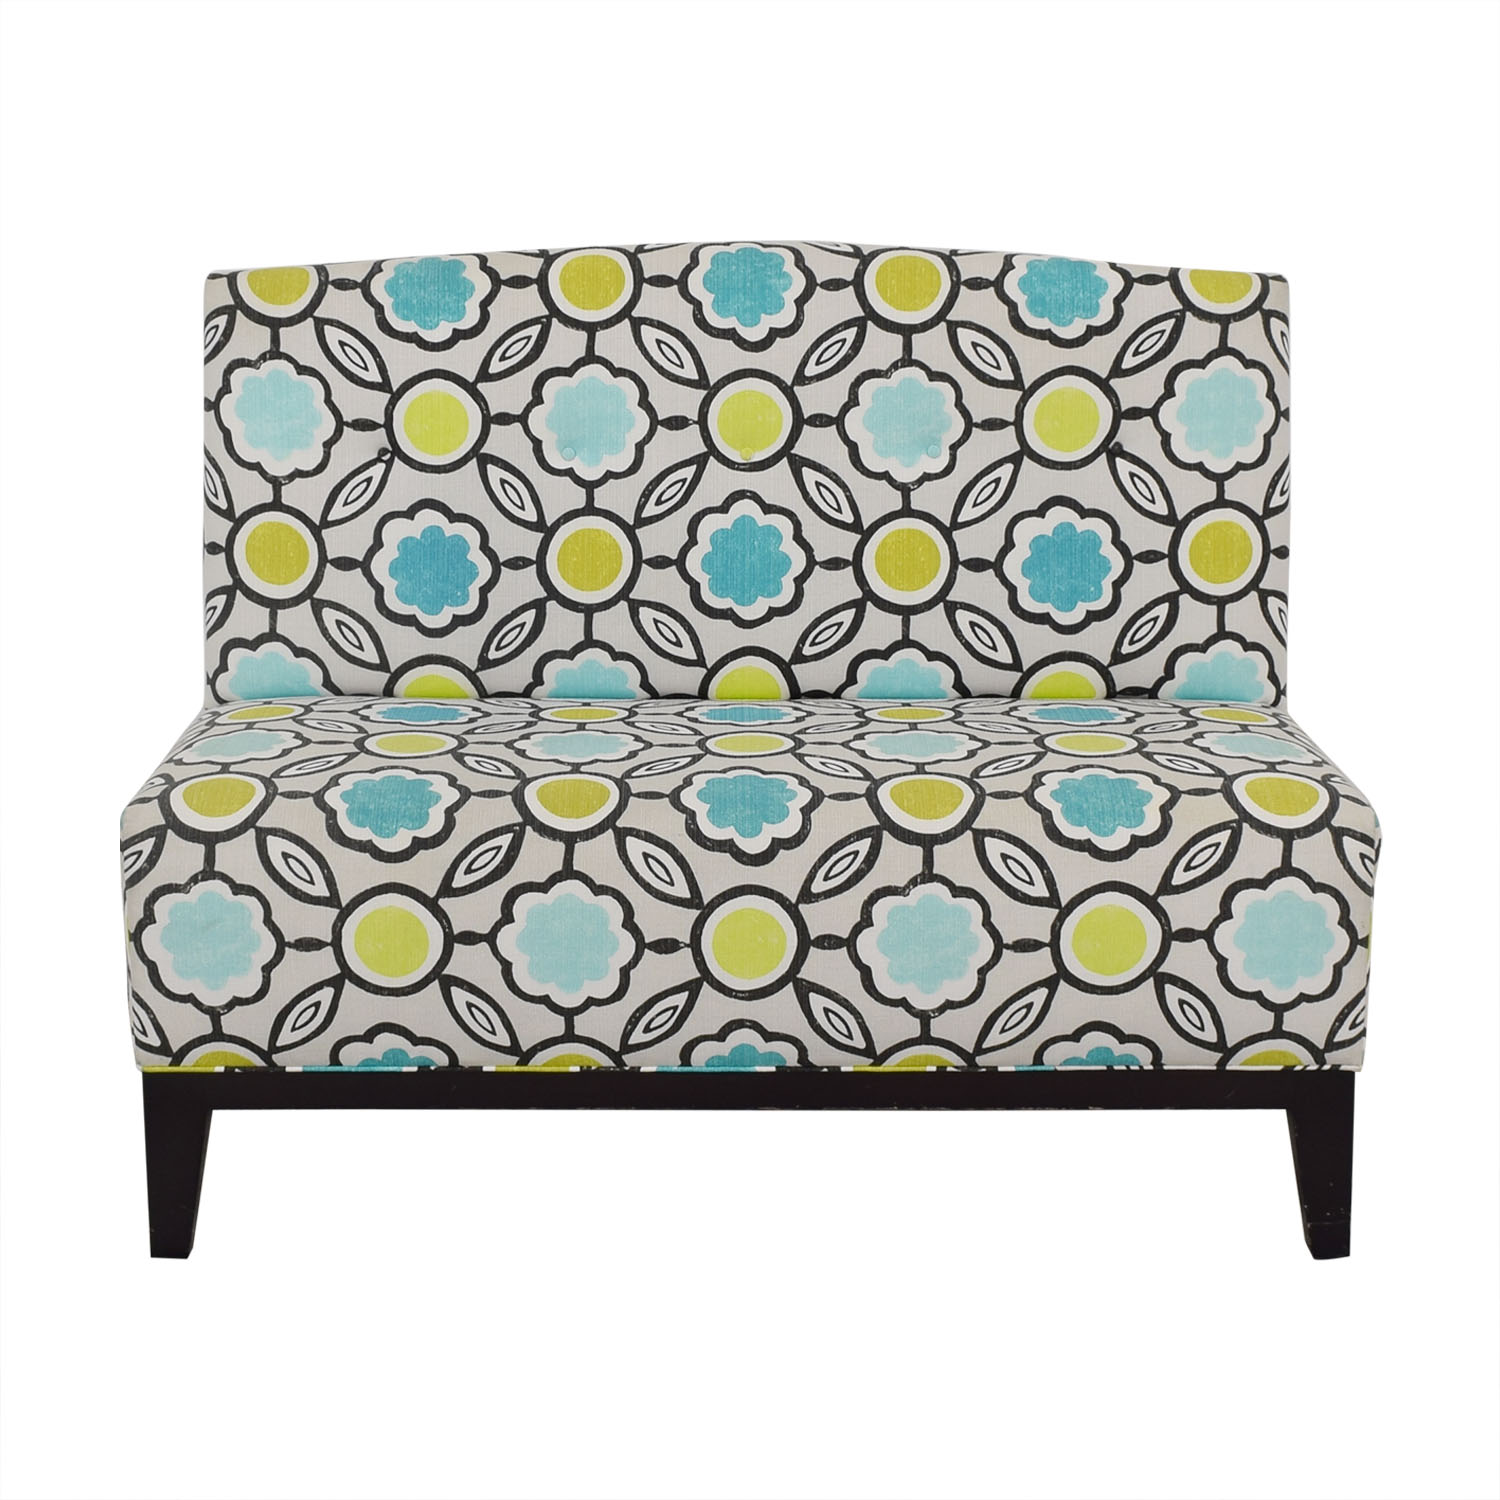 Stewart Furniture Dining Banquette sale